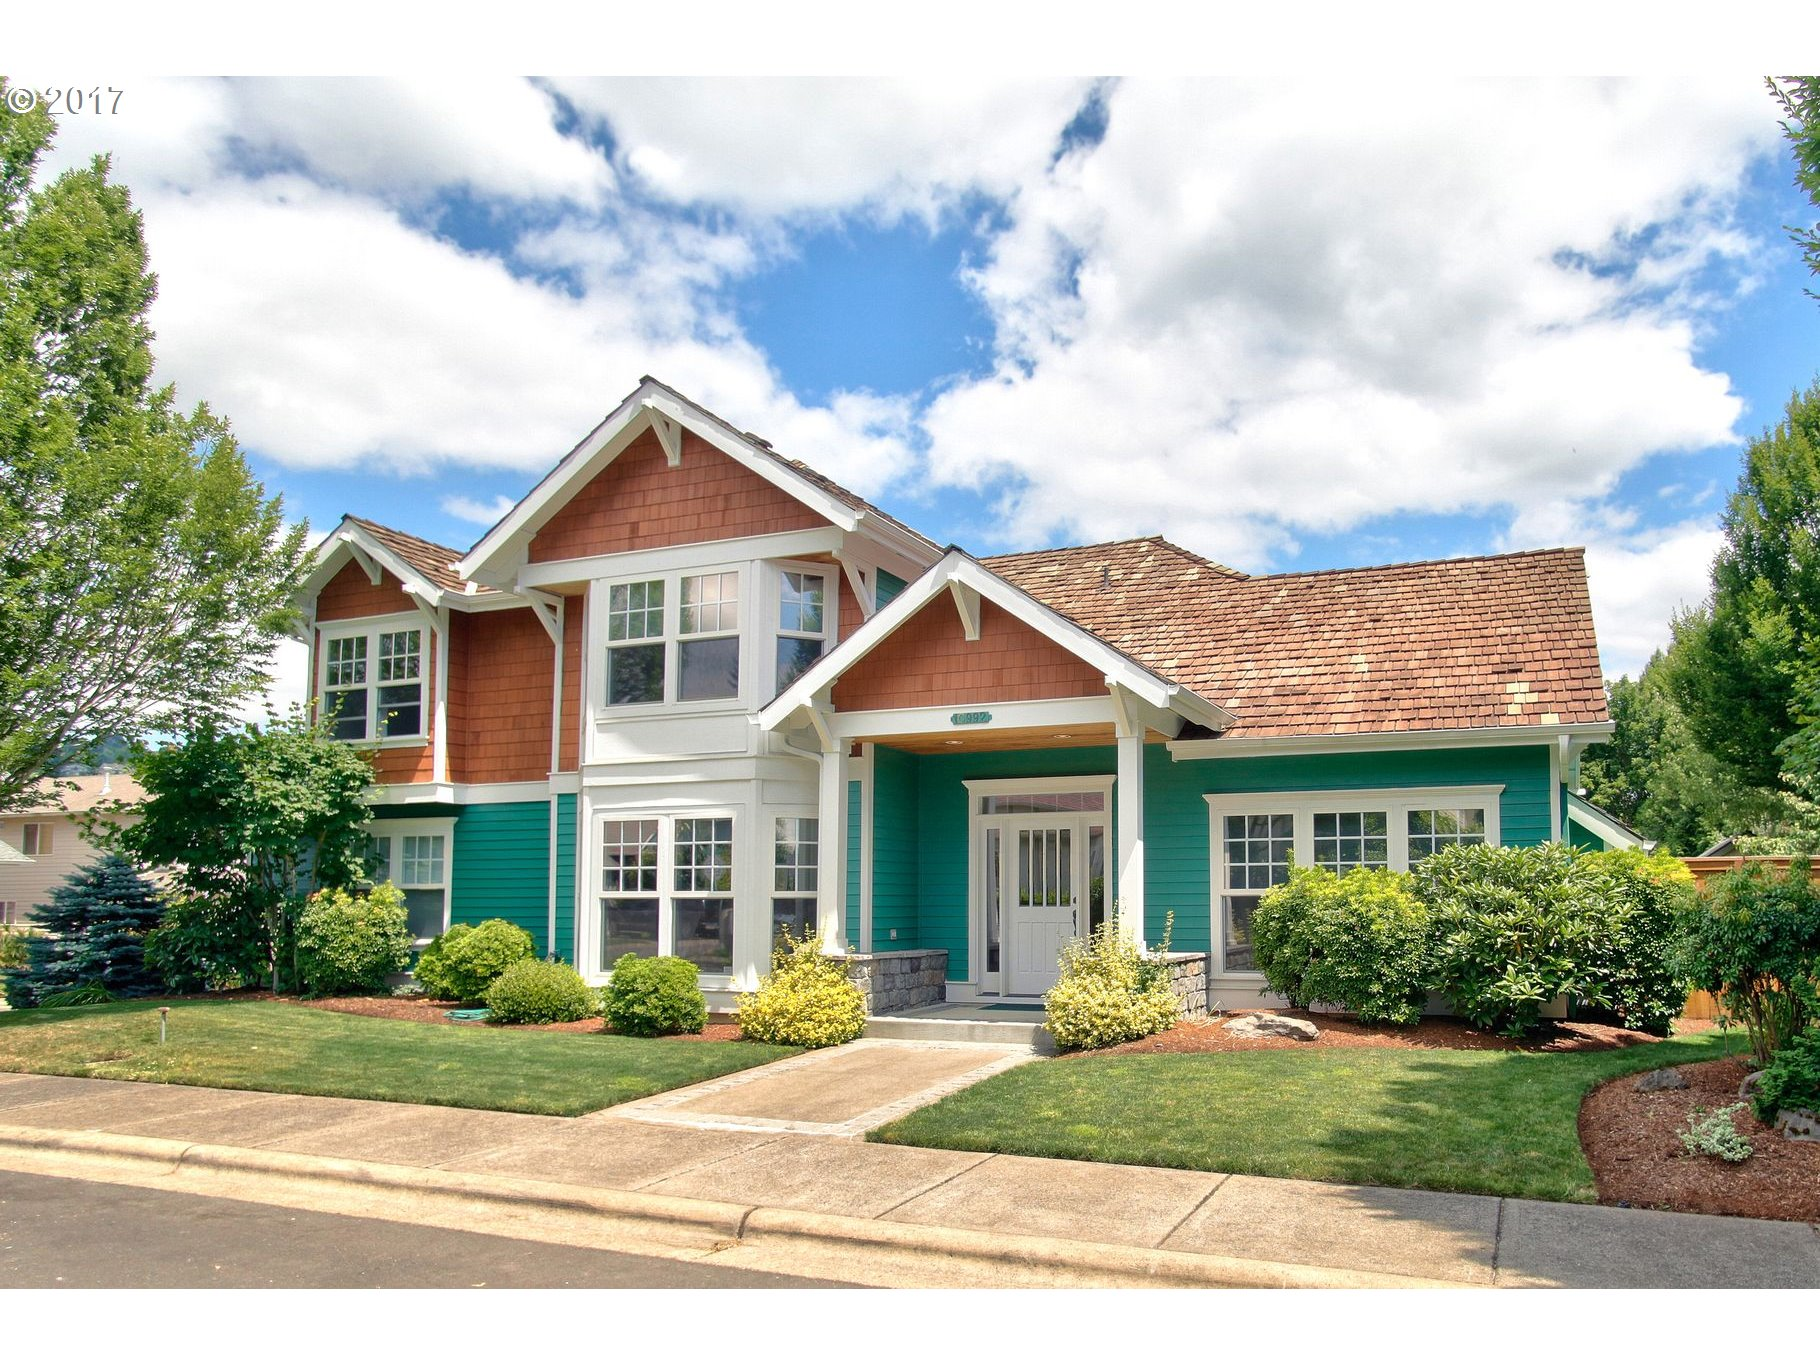 10992 NW APPELLATE WAY, Portland, OR 97229